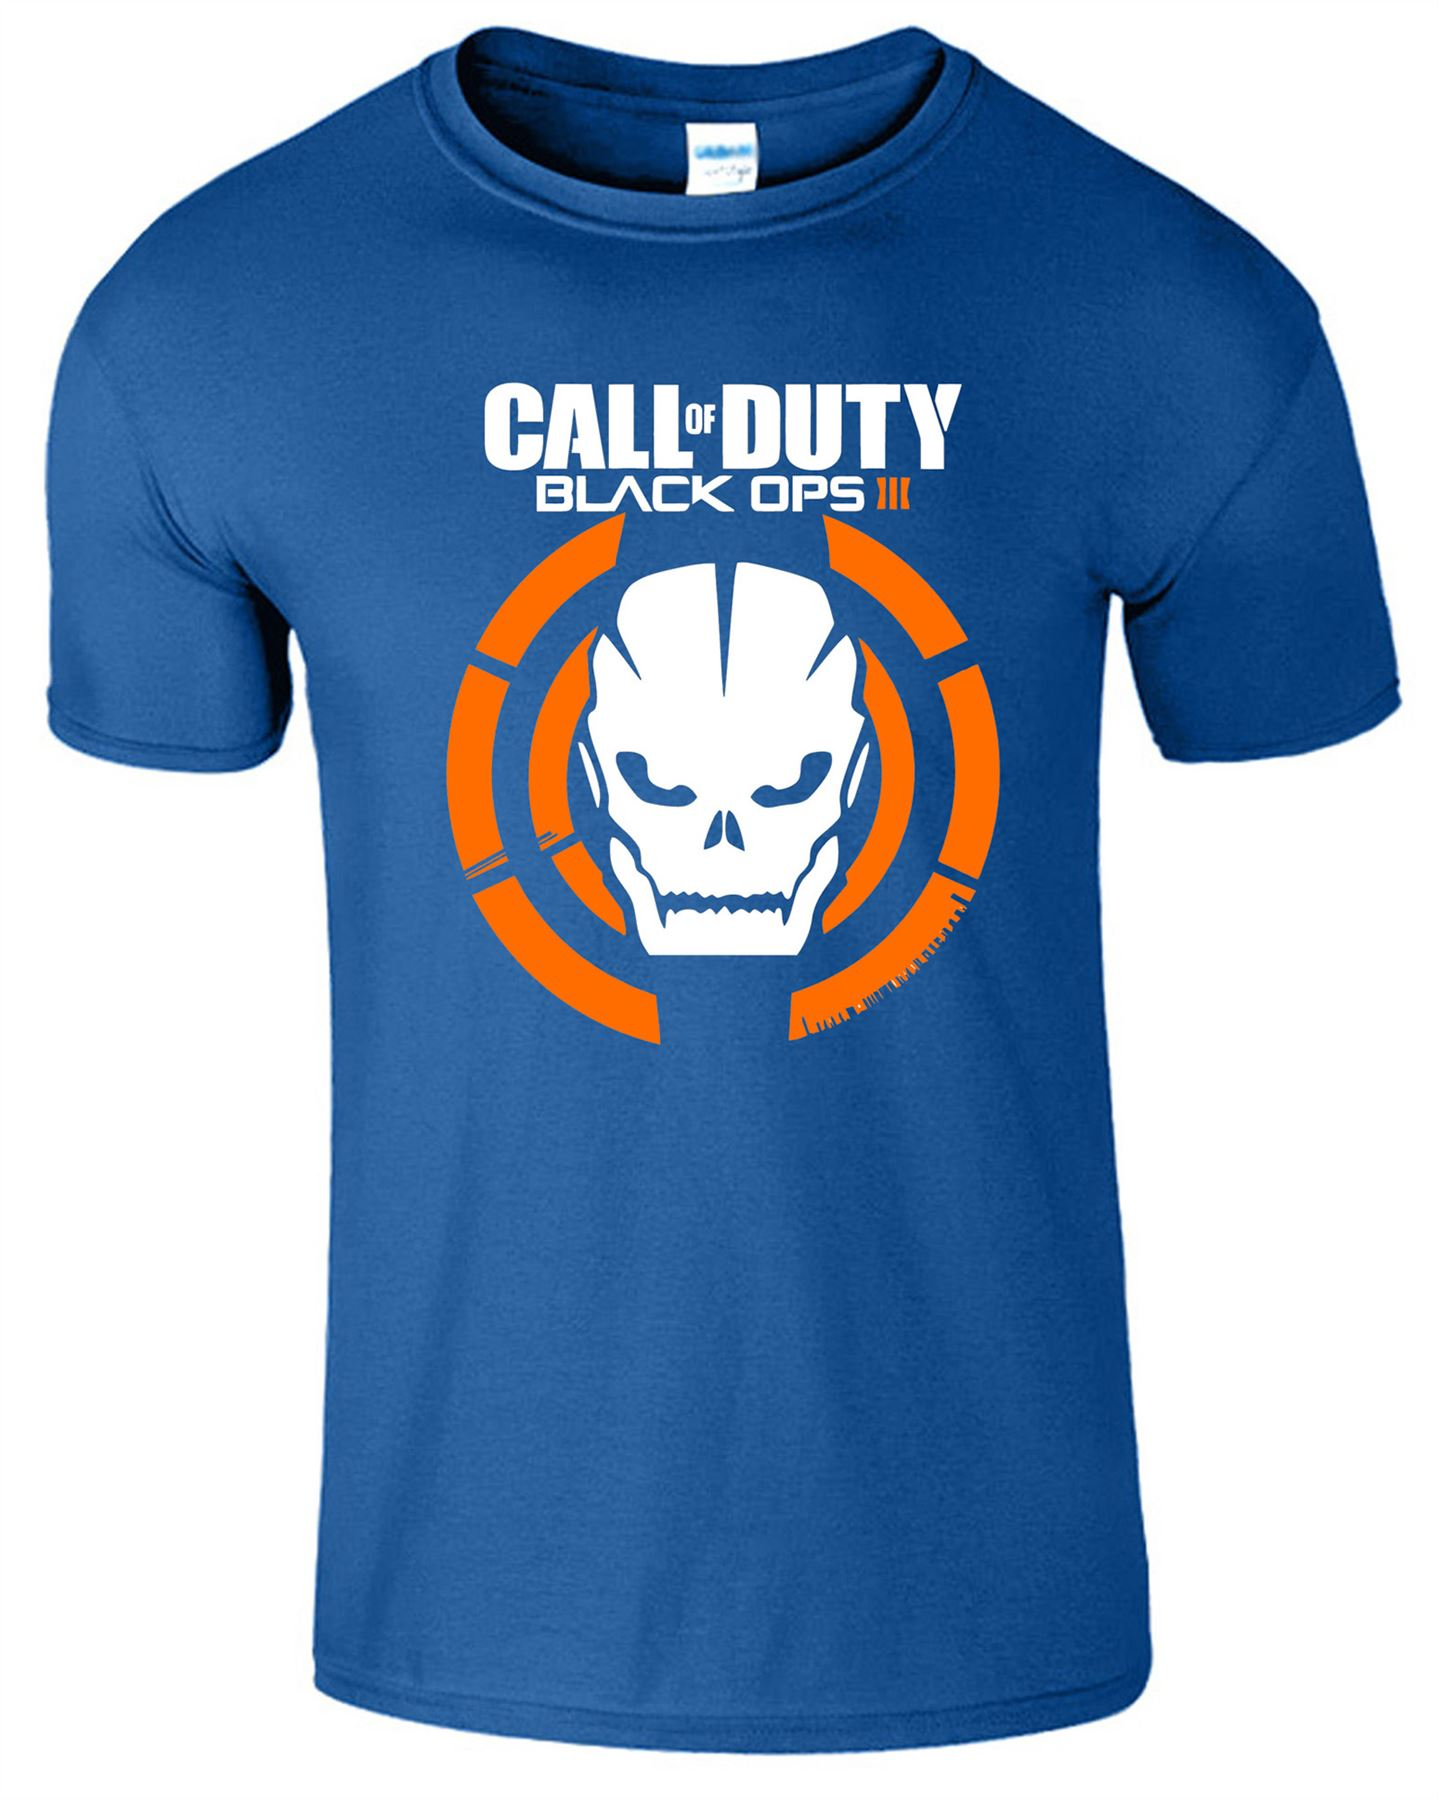 Duty-Black-Ops-Xbox-PS3-PS4-Game-Logo-With-Skull-Mens-Tshirt-Tee-Top-Gift miniatuur 12